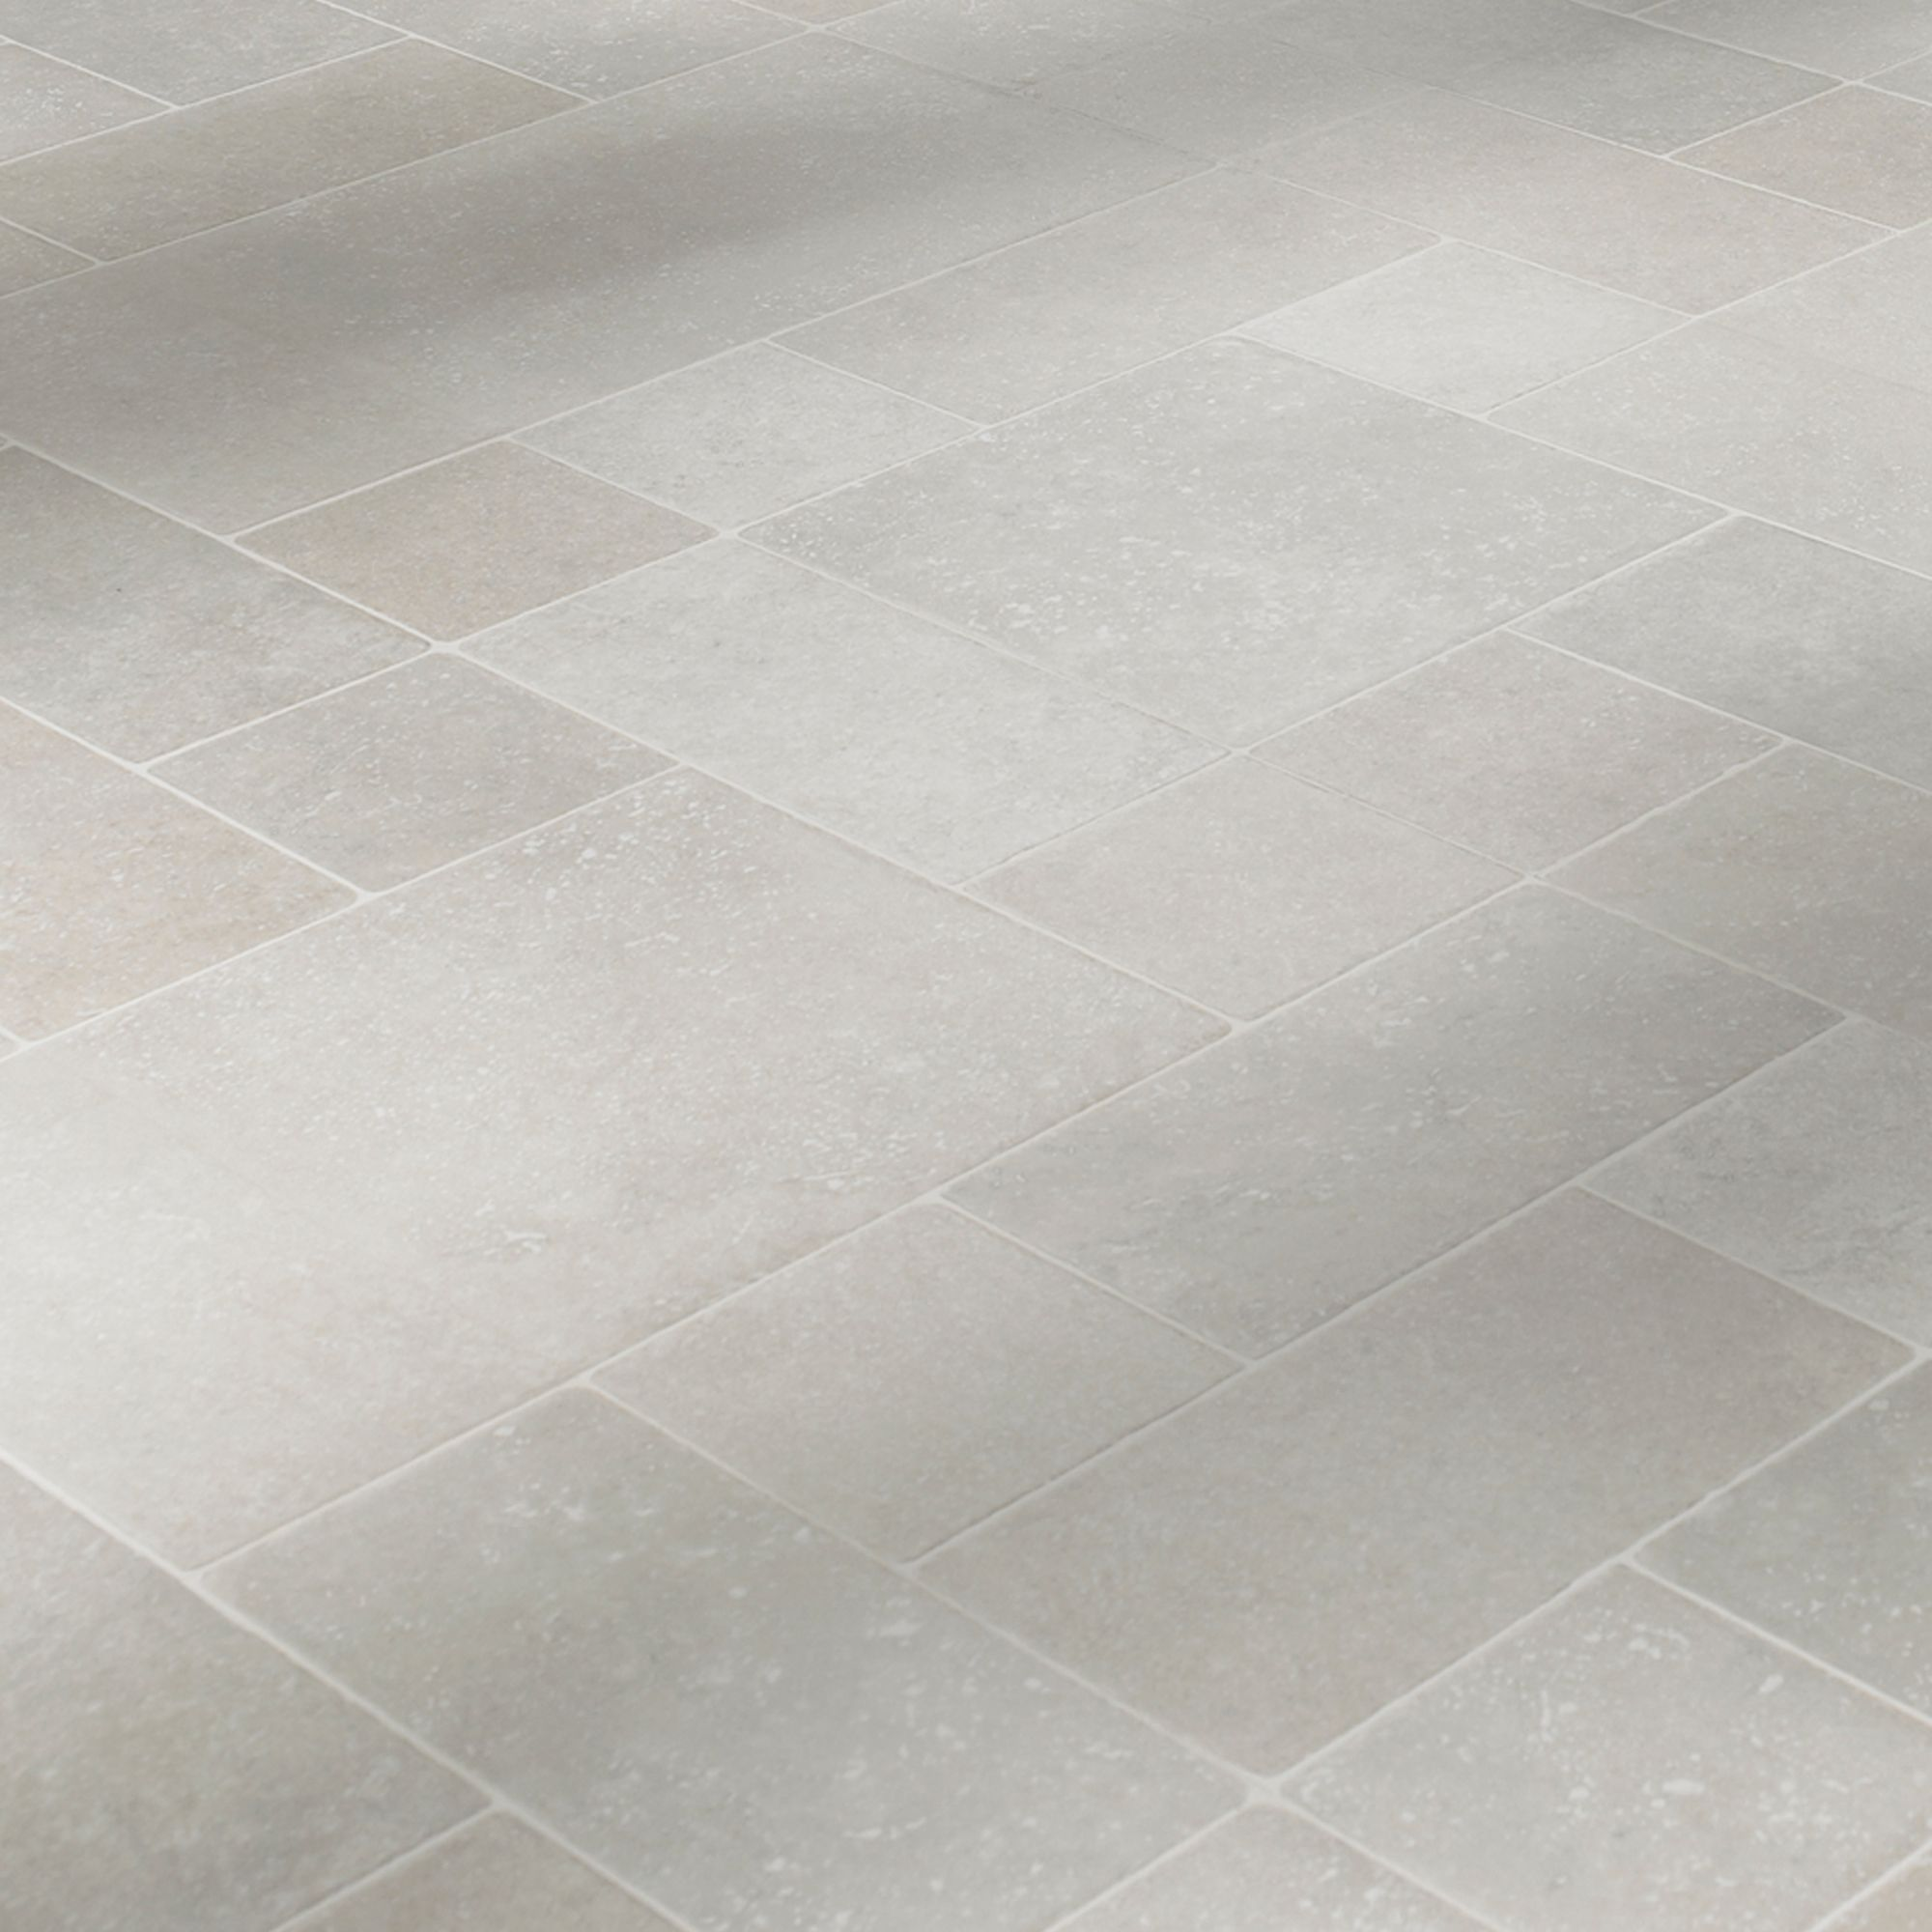 Barbarita Random Limestone Tile Effect Laminate Flooring 1